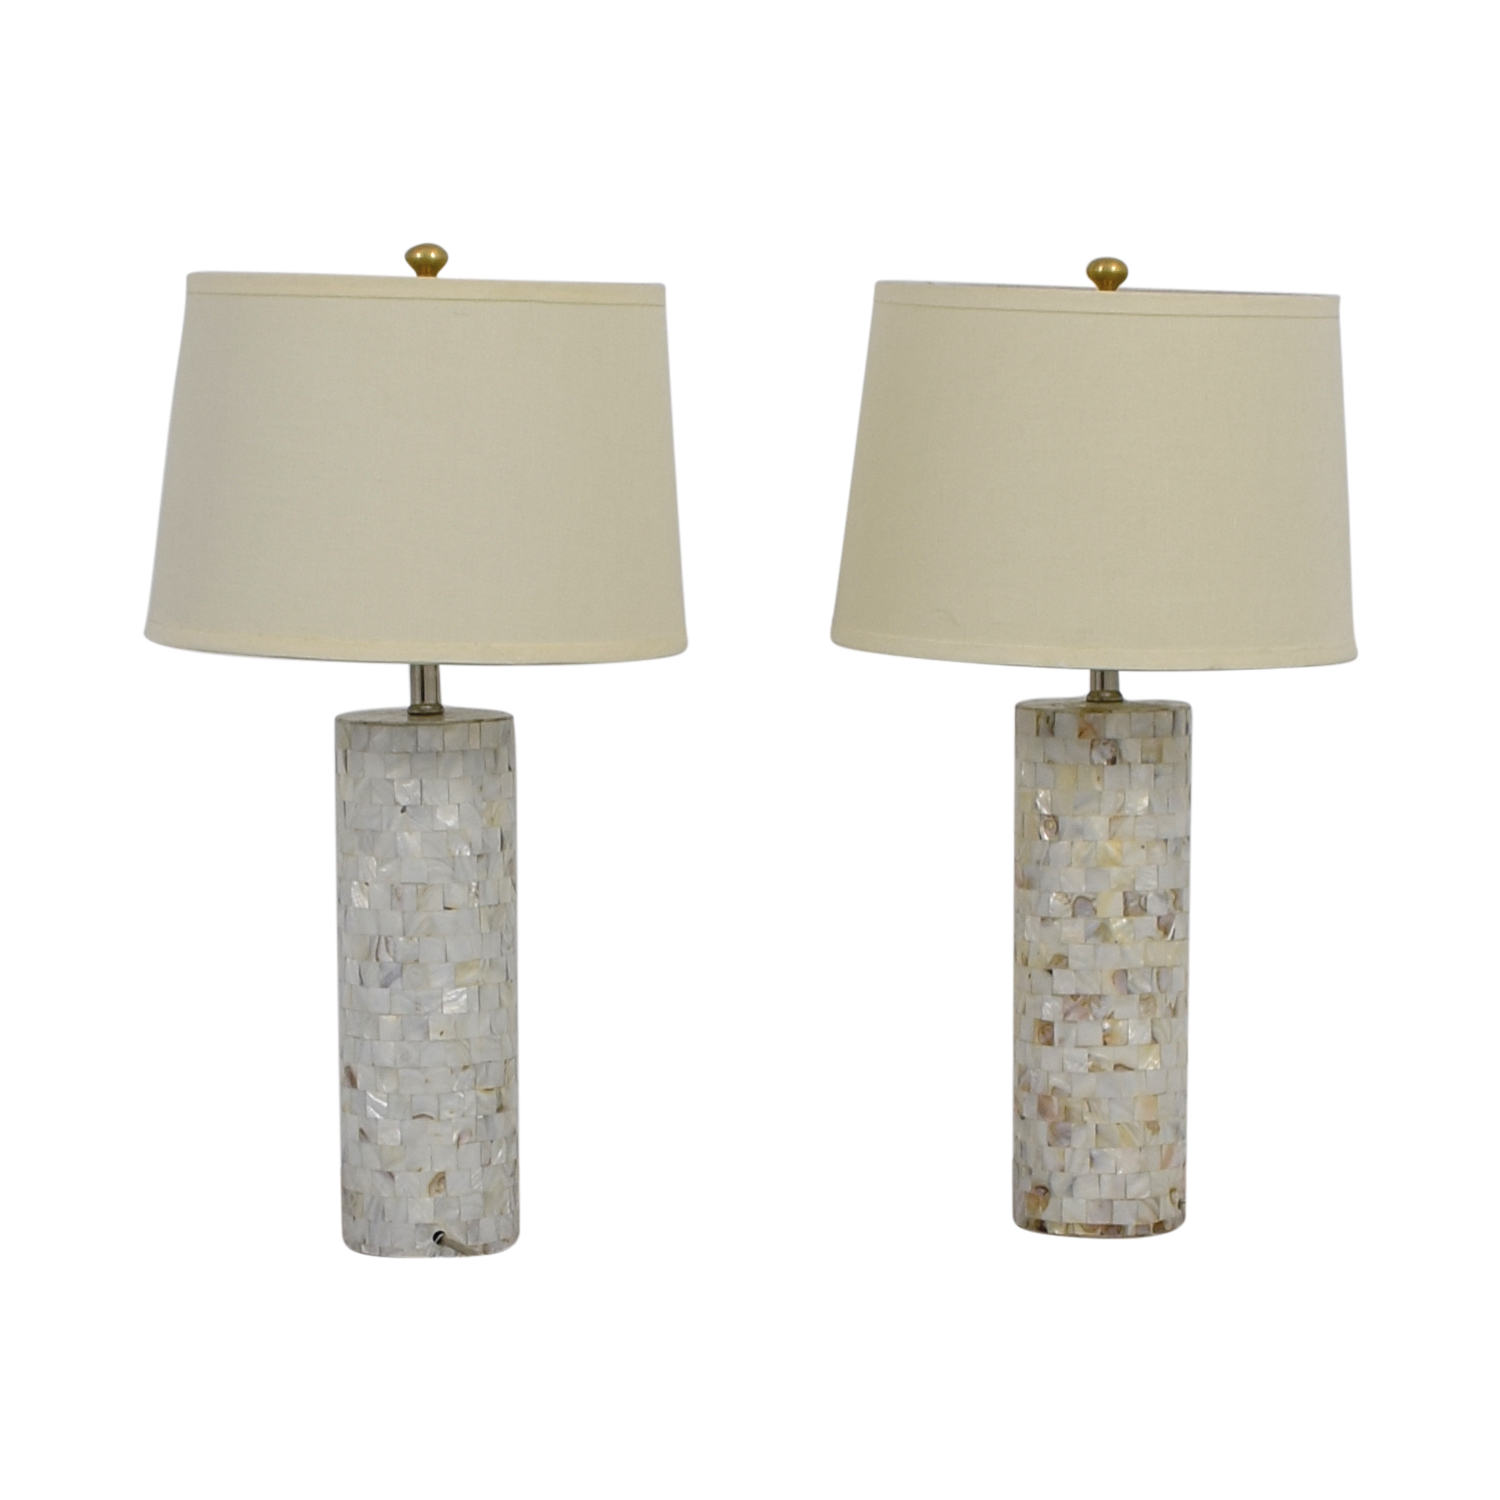 Mother of Pearl Table Lamps dimensions